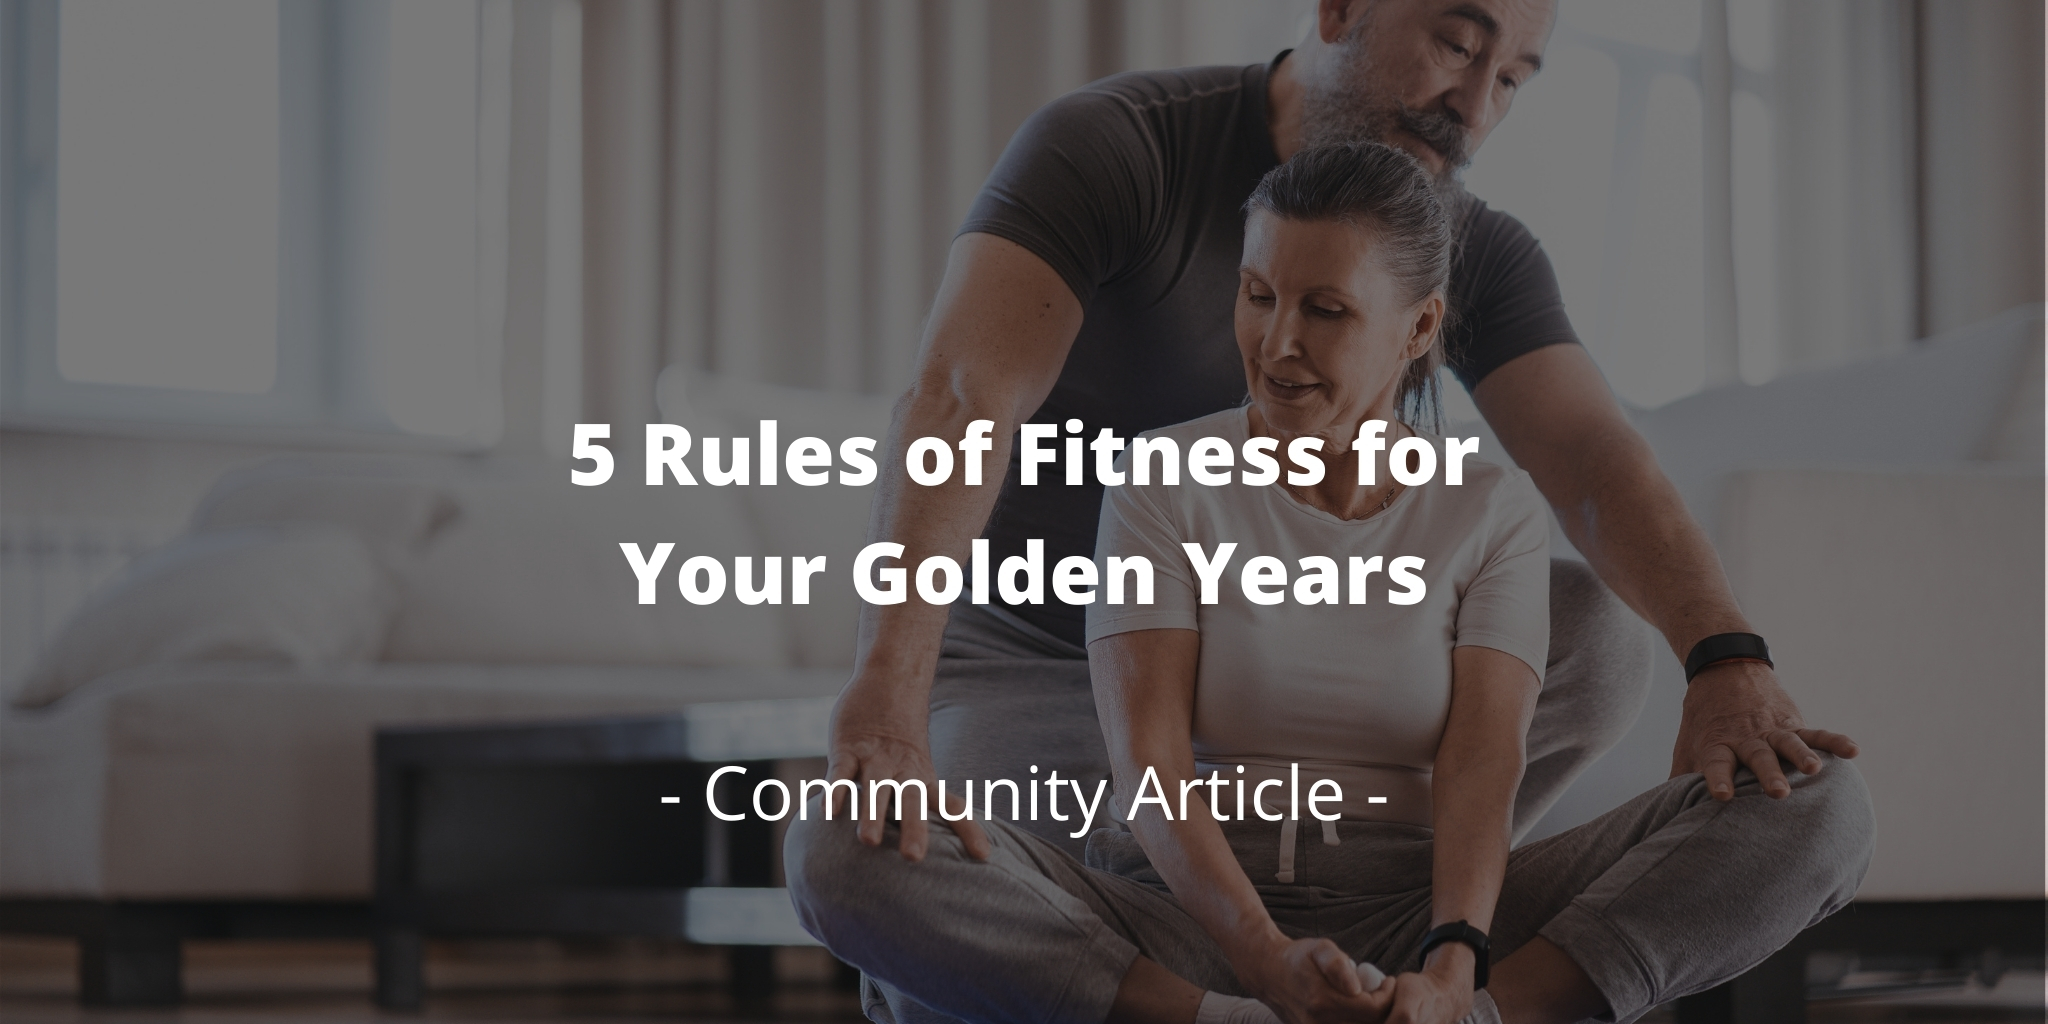 5 Rules of Fitness for Your Golden Years